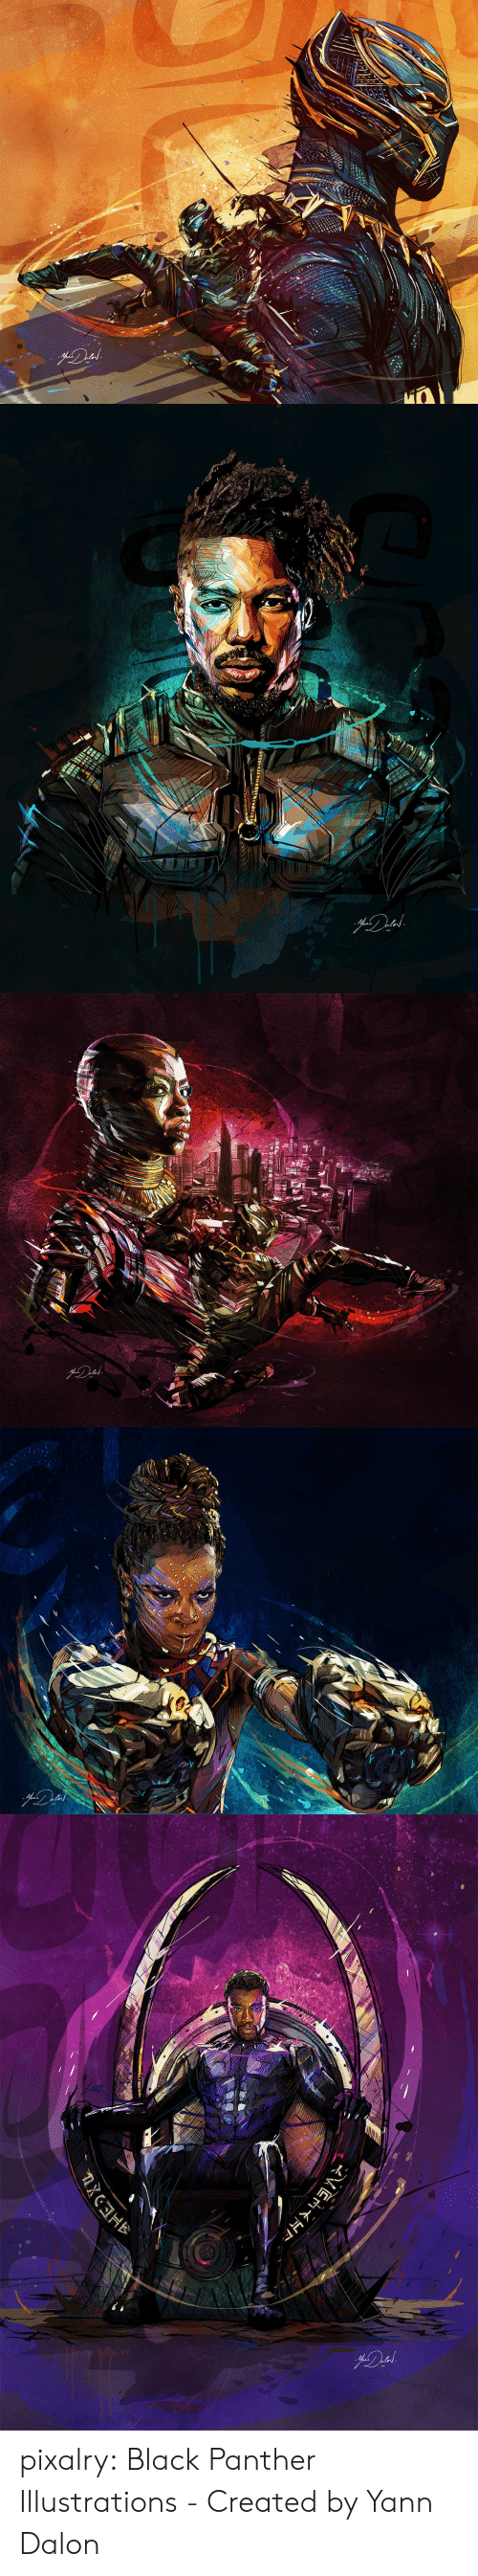 Target, Tumblr, and Black: pixalry: Black Panther Illustrations - Created by Yann Dalon